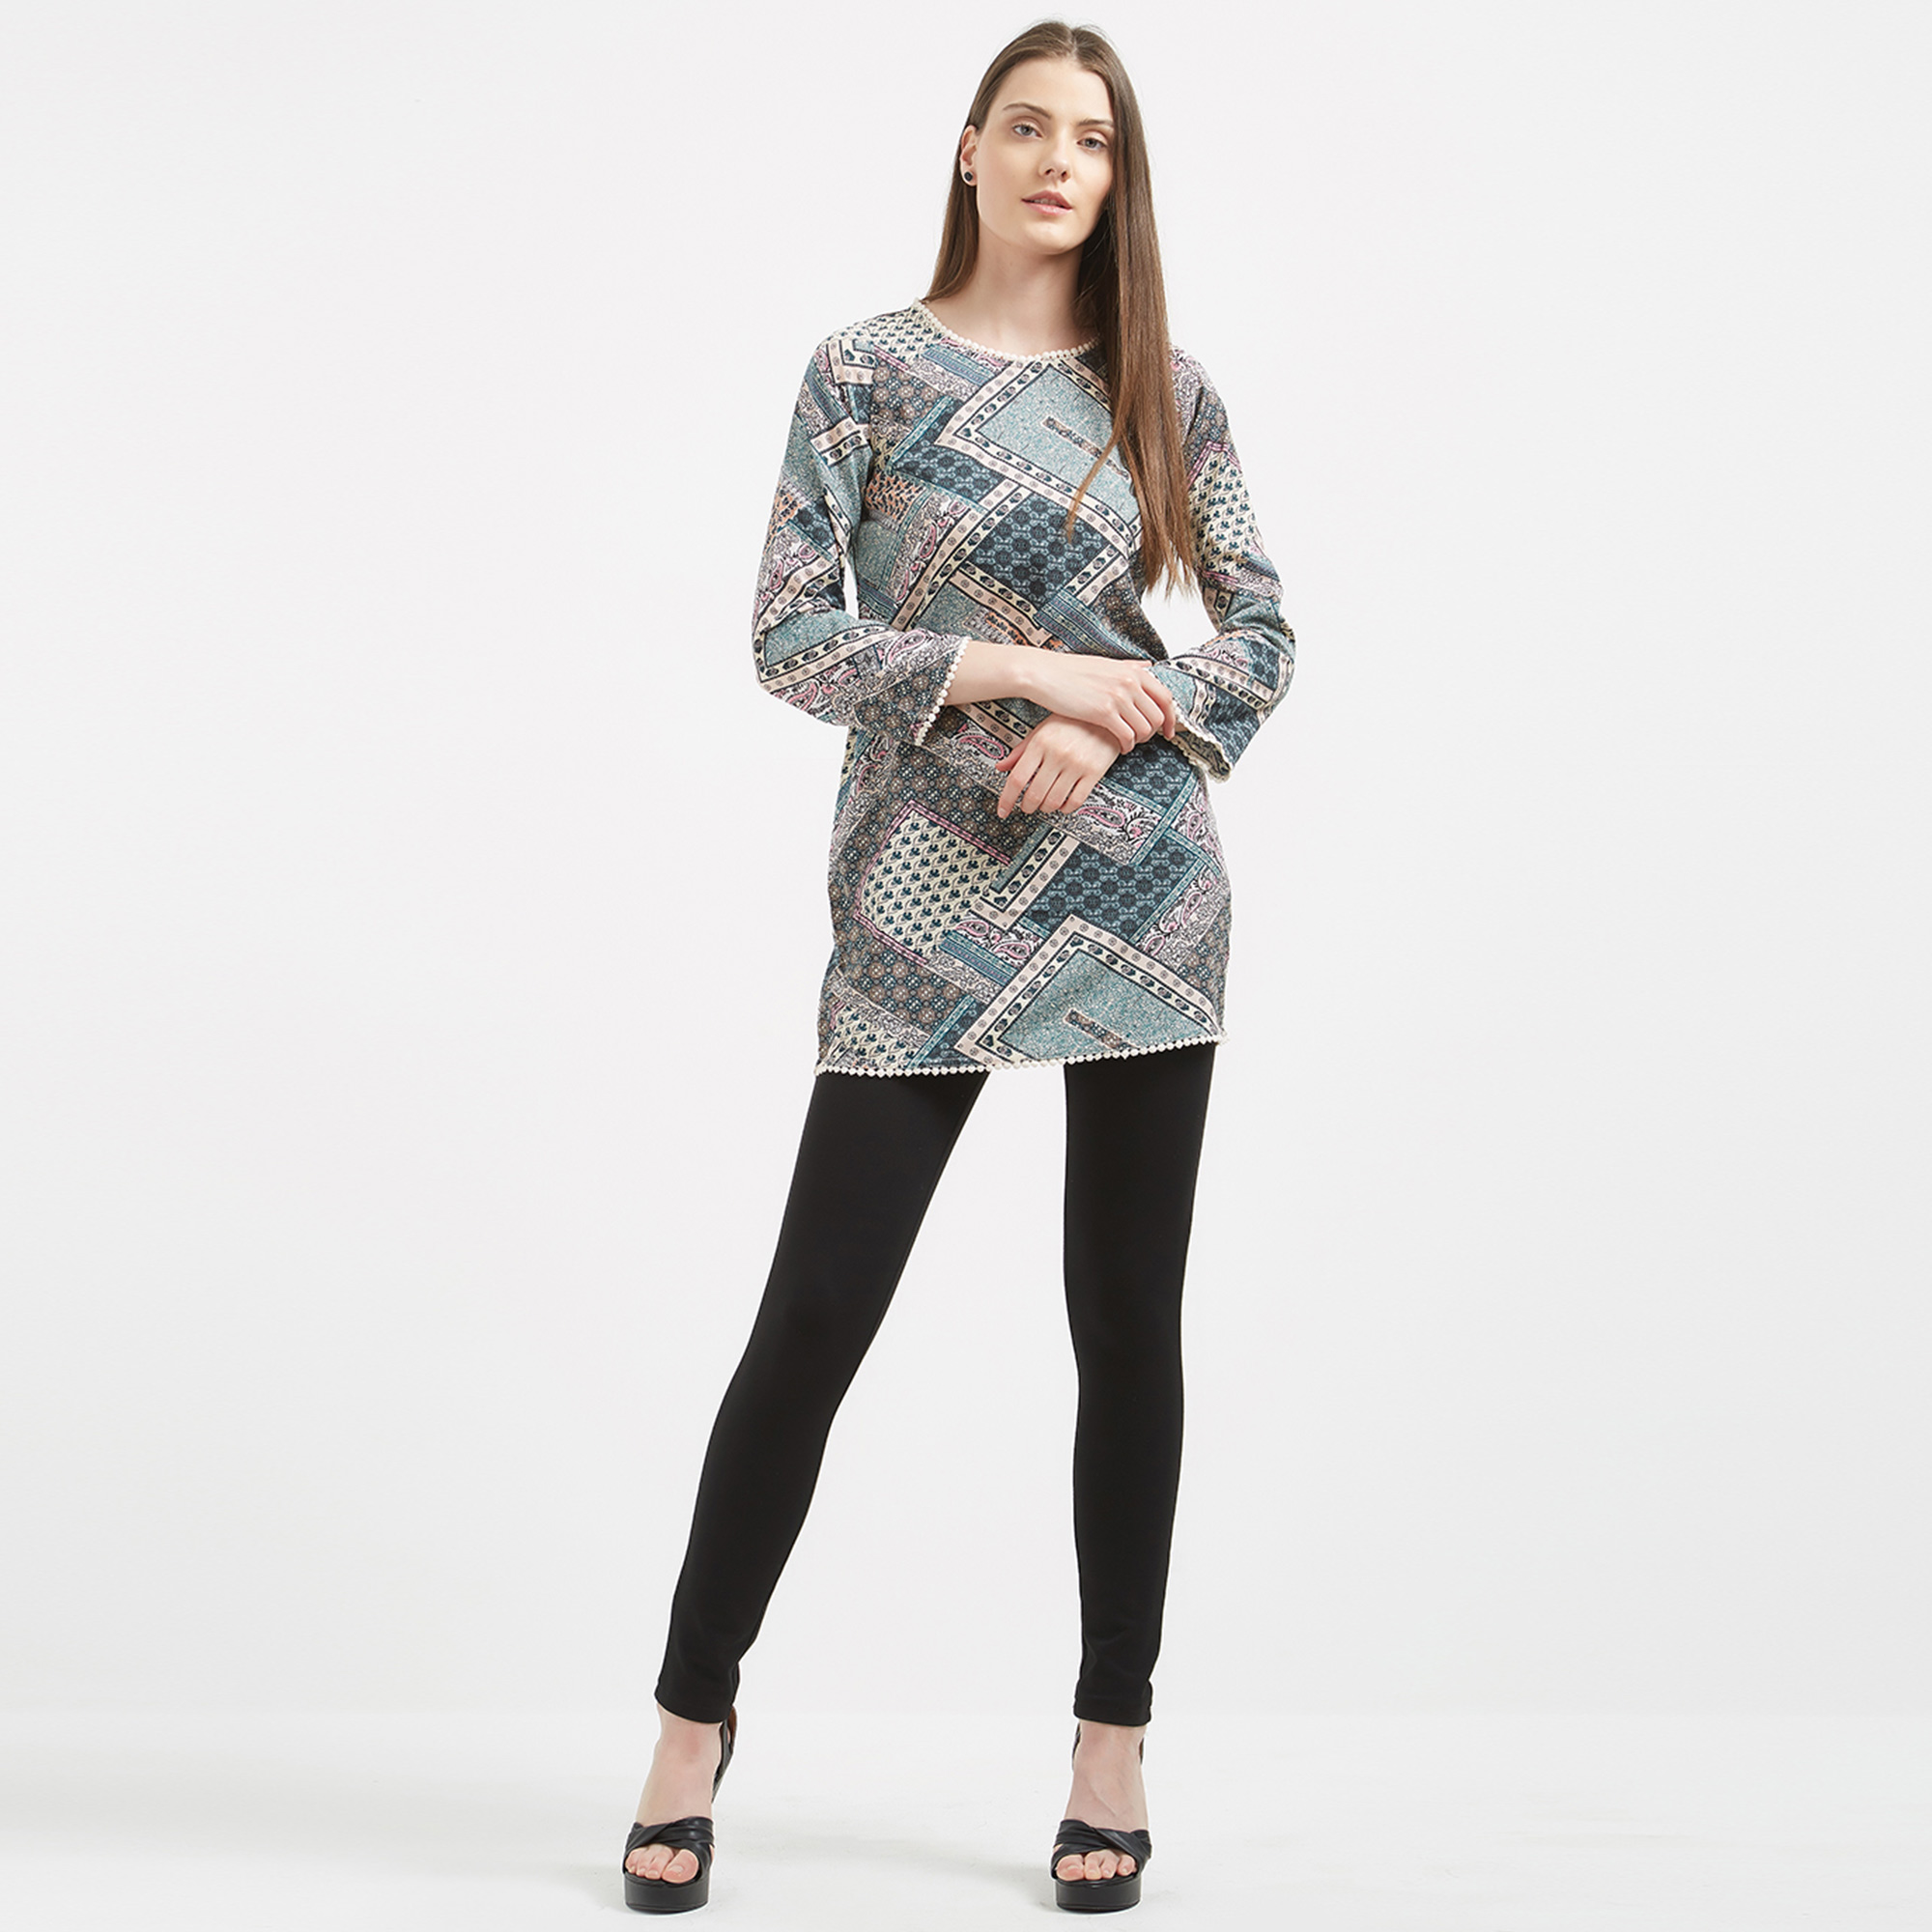 Adorning Blue Colored Printed Casual Wear Western Cotton Top